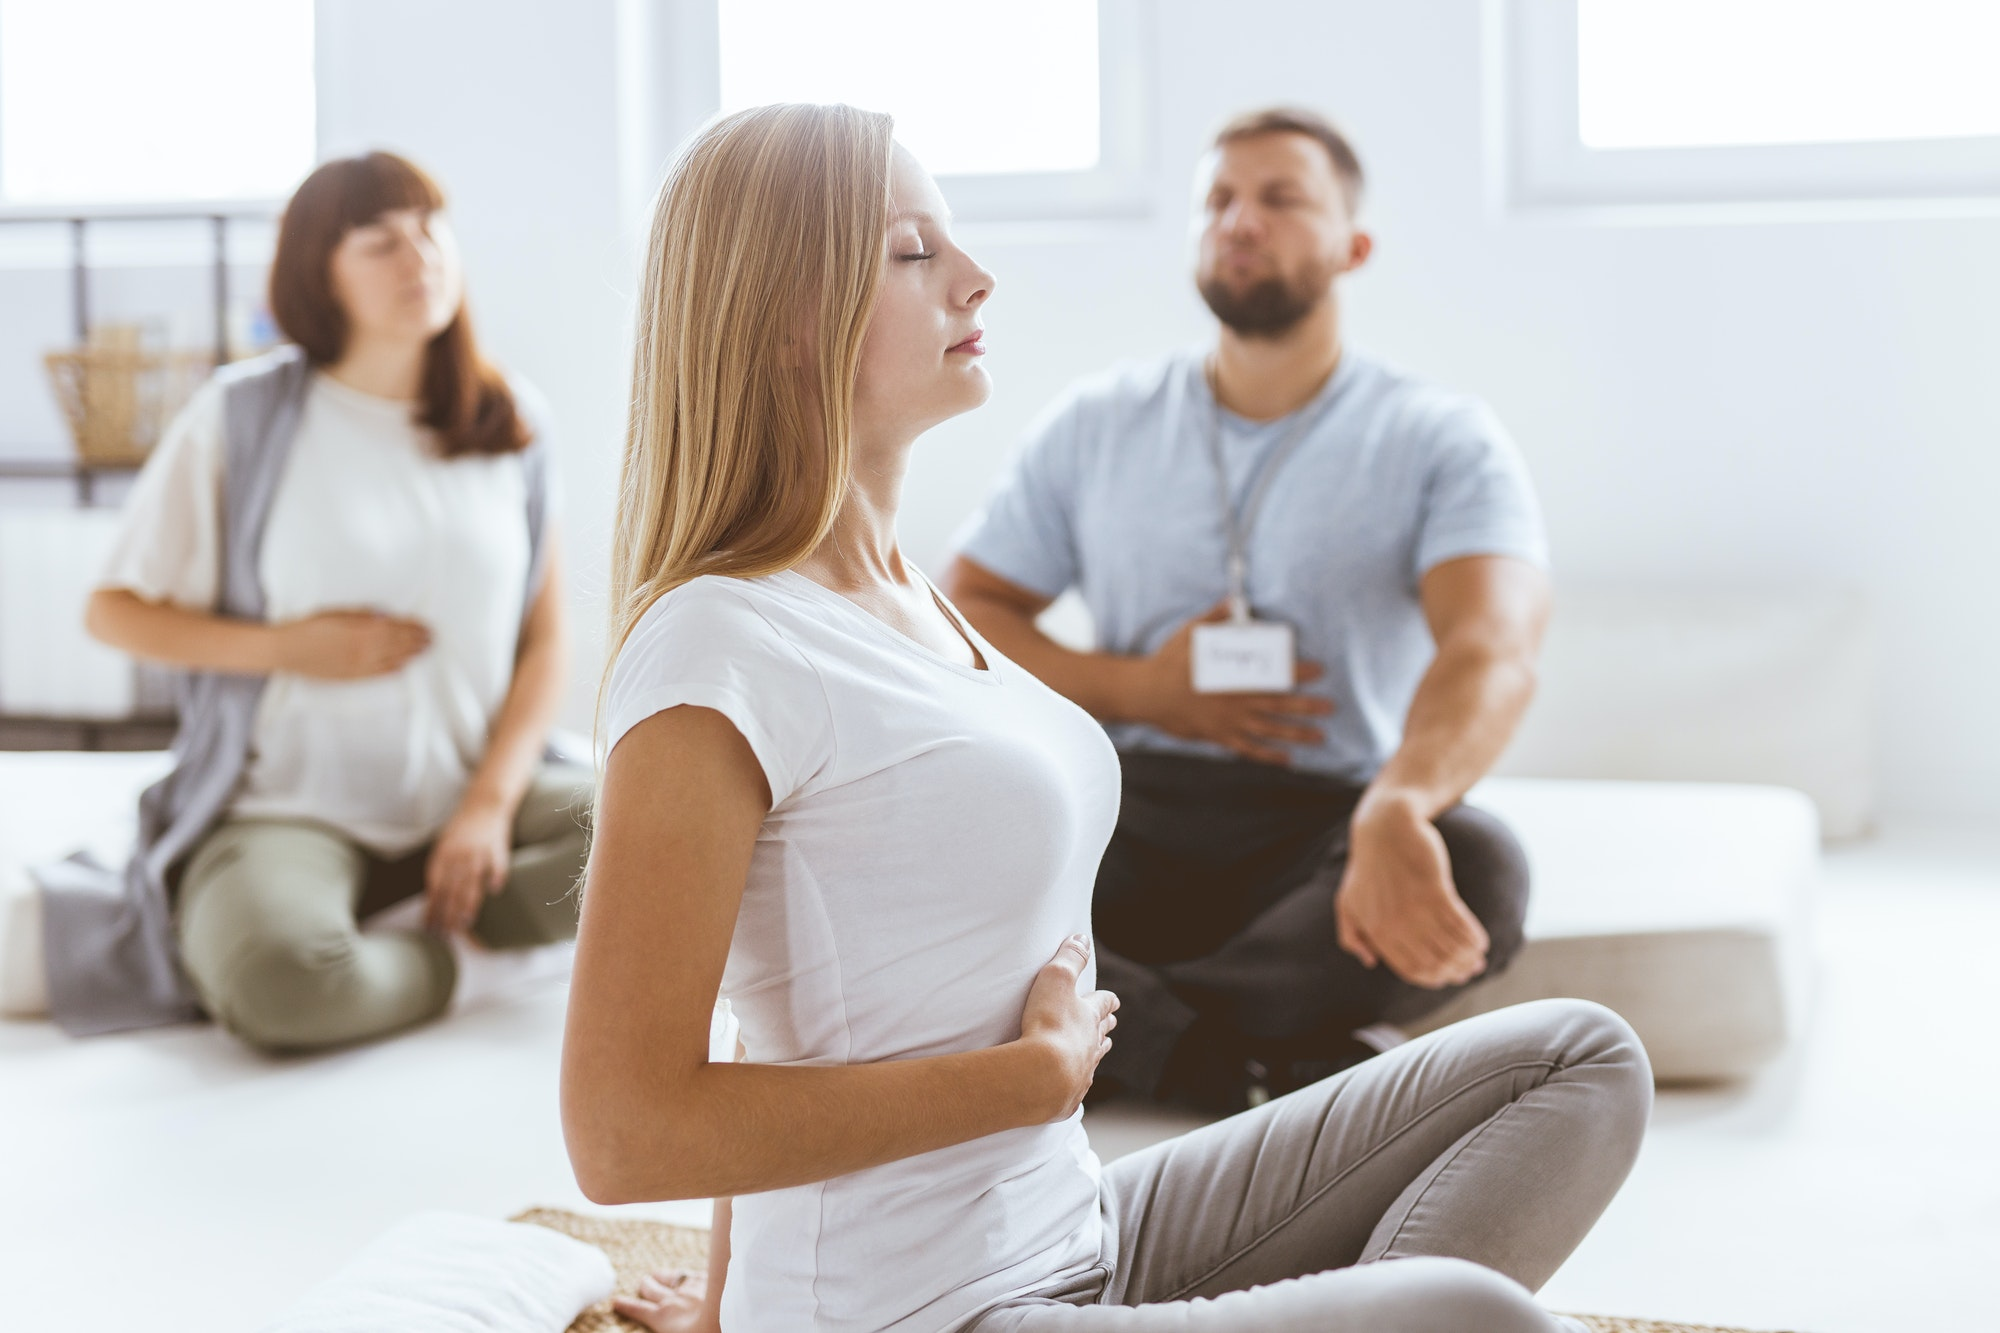 Praciticing the breathing